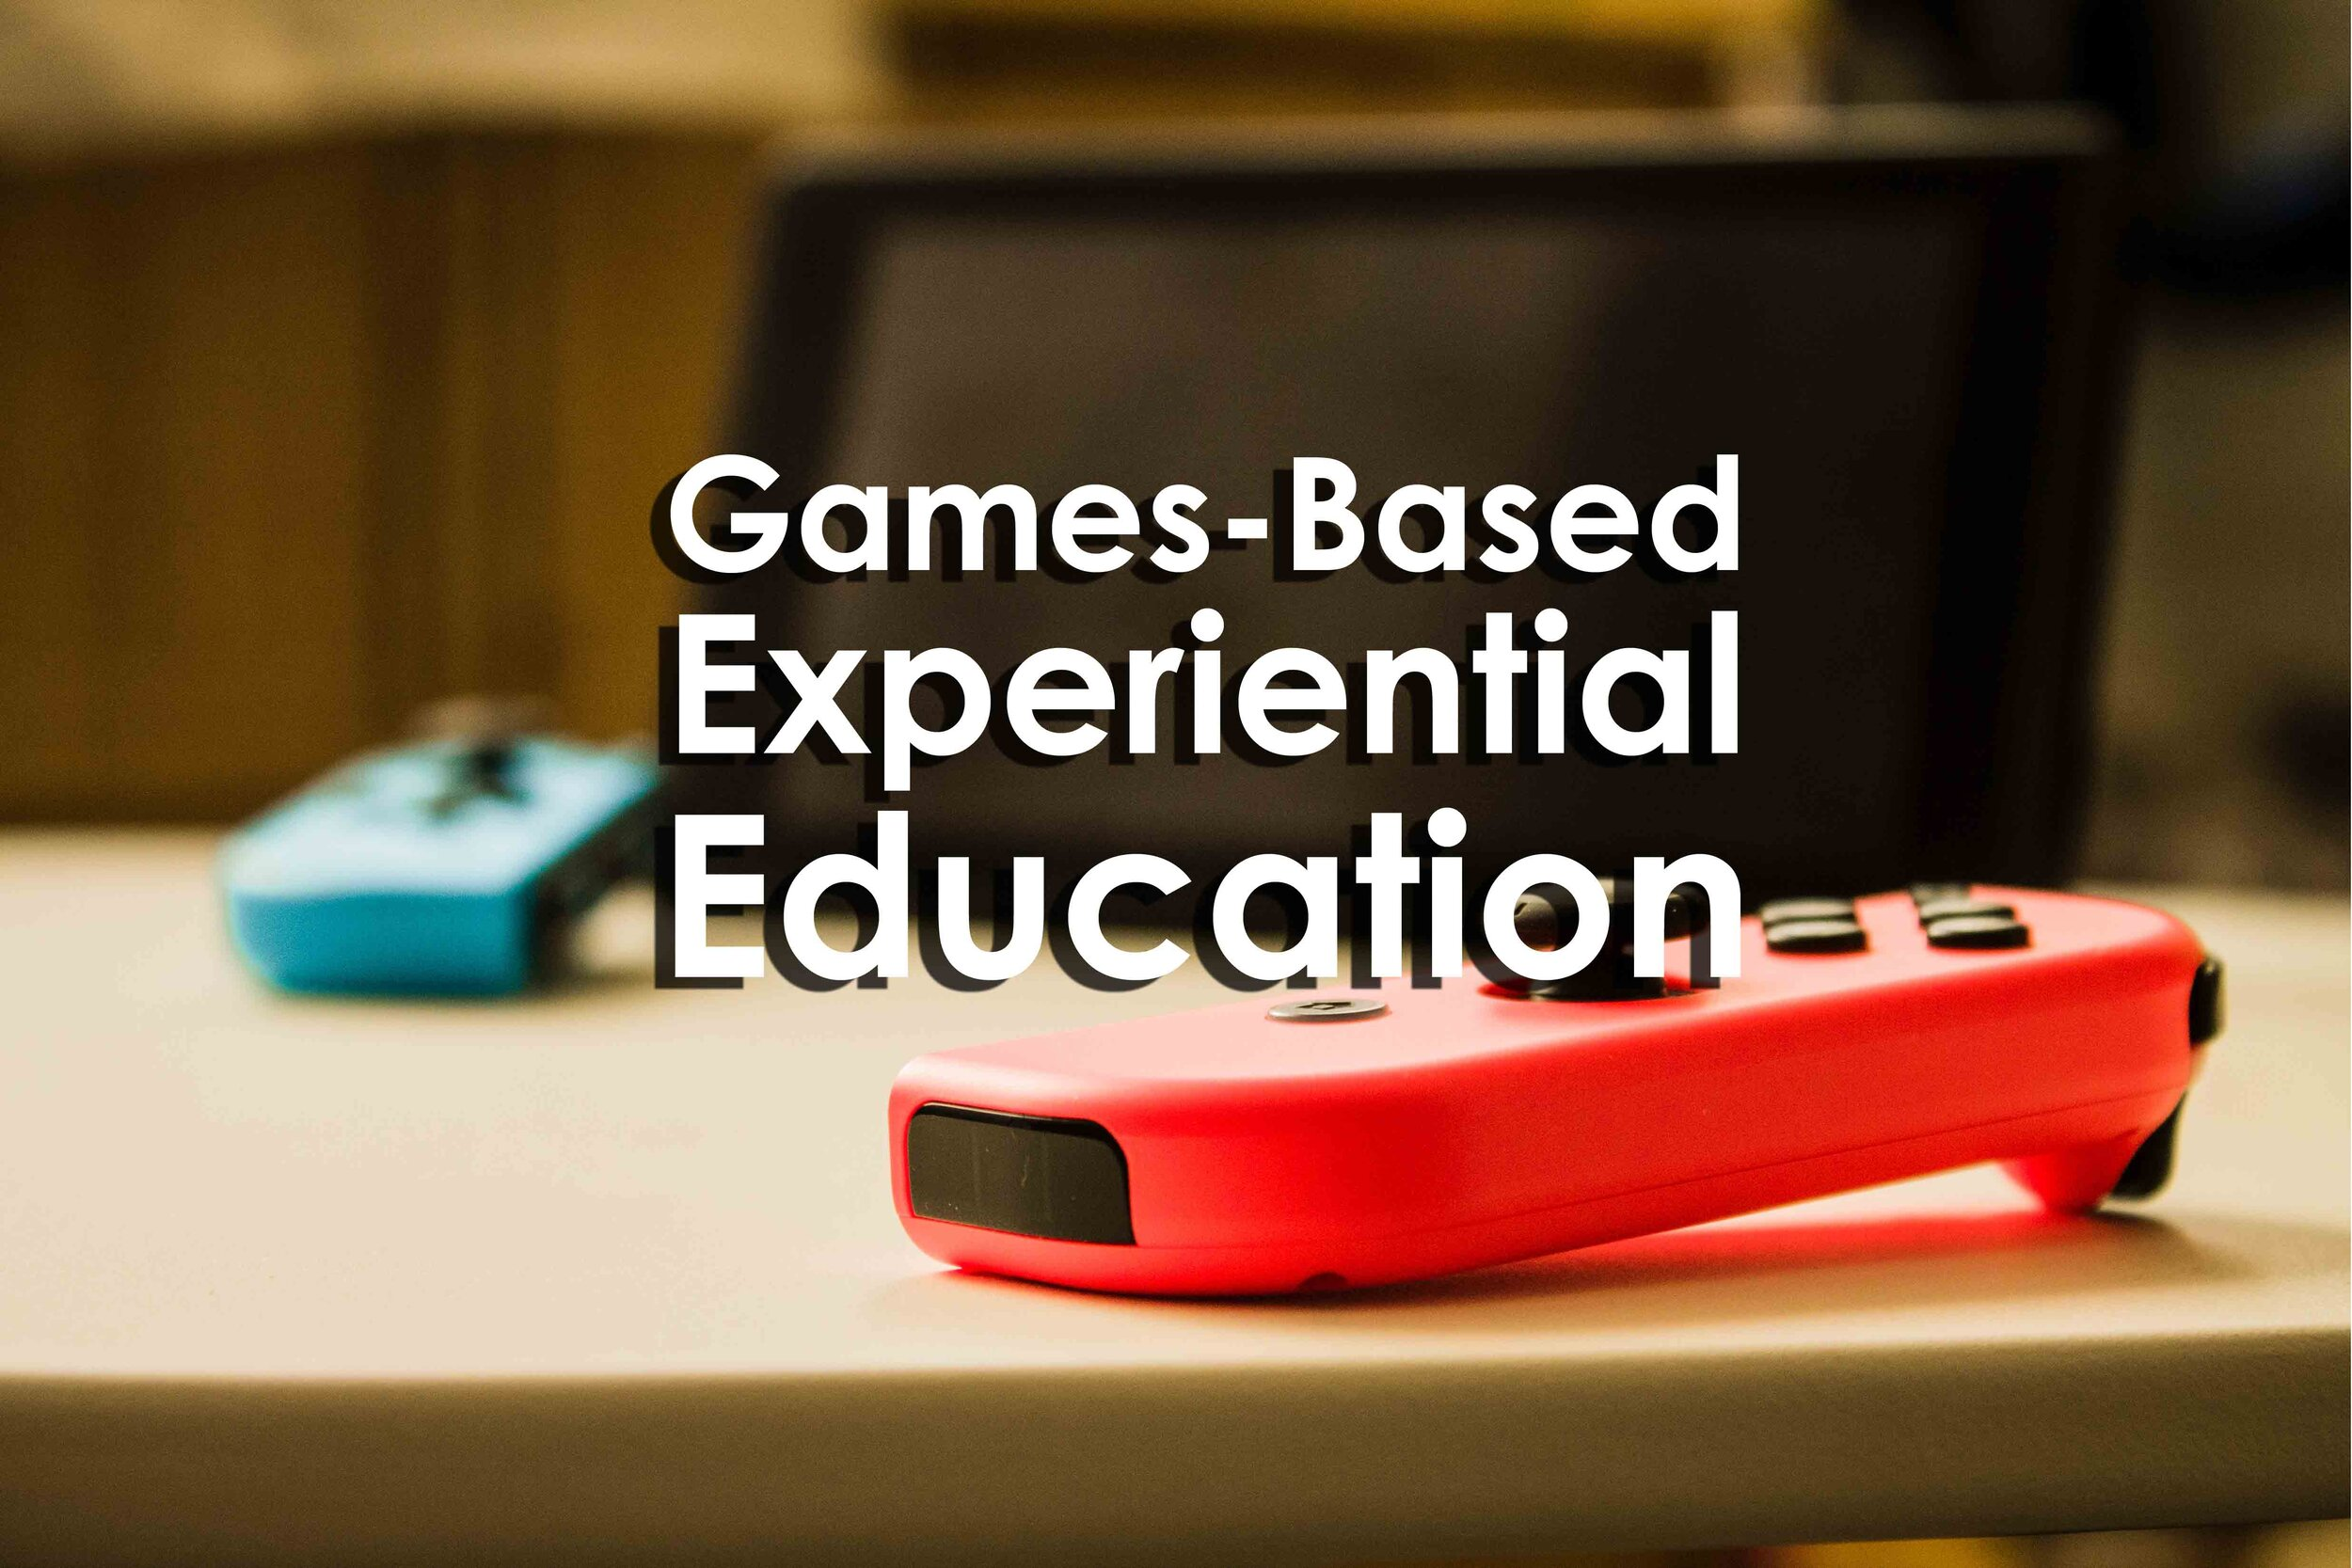 What is Games-Based Experiential Education?